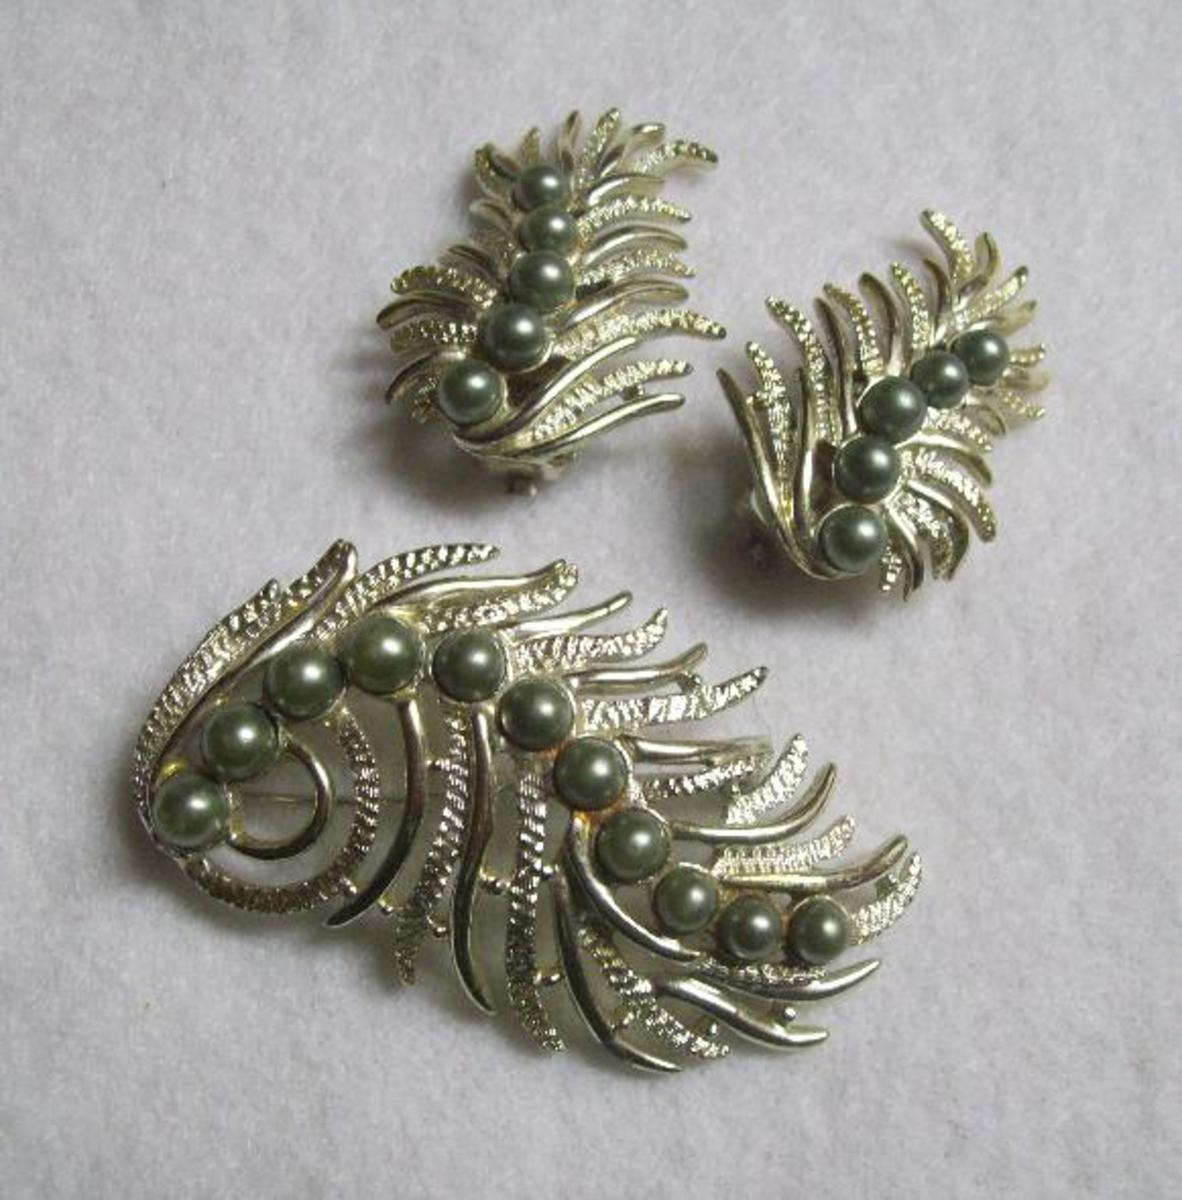 A Sarah Coventry pin and earring set.